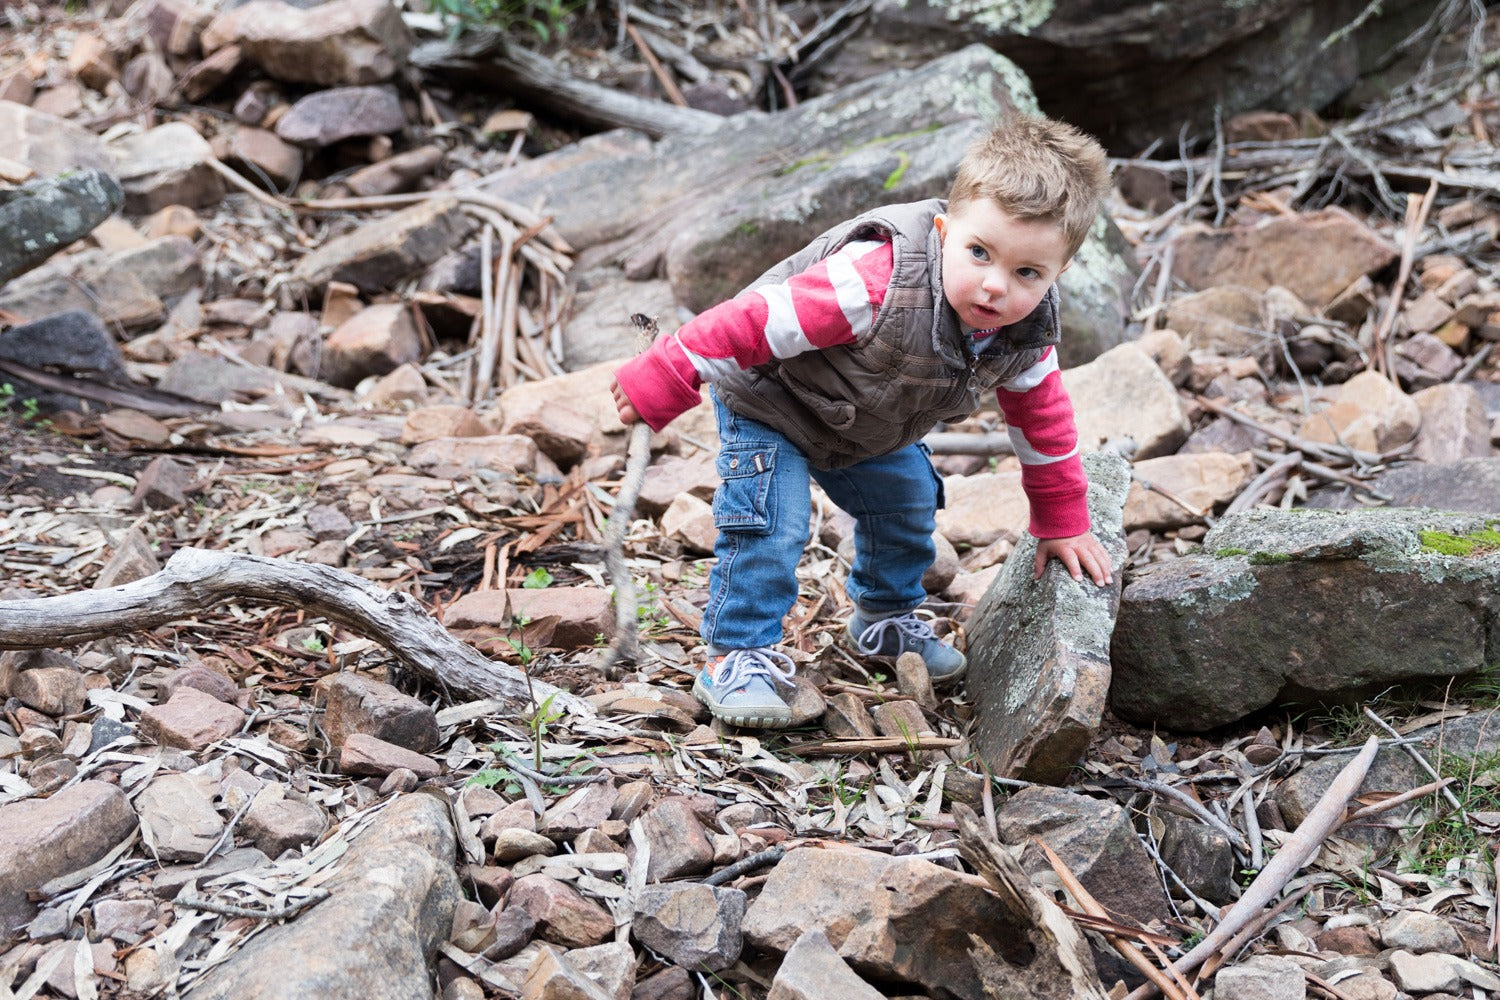 Bushwalking with 2-year-olds